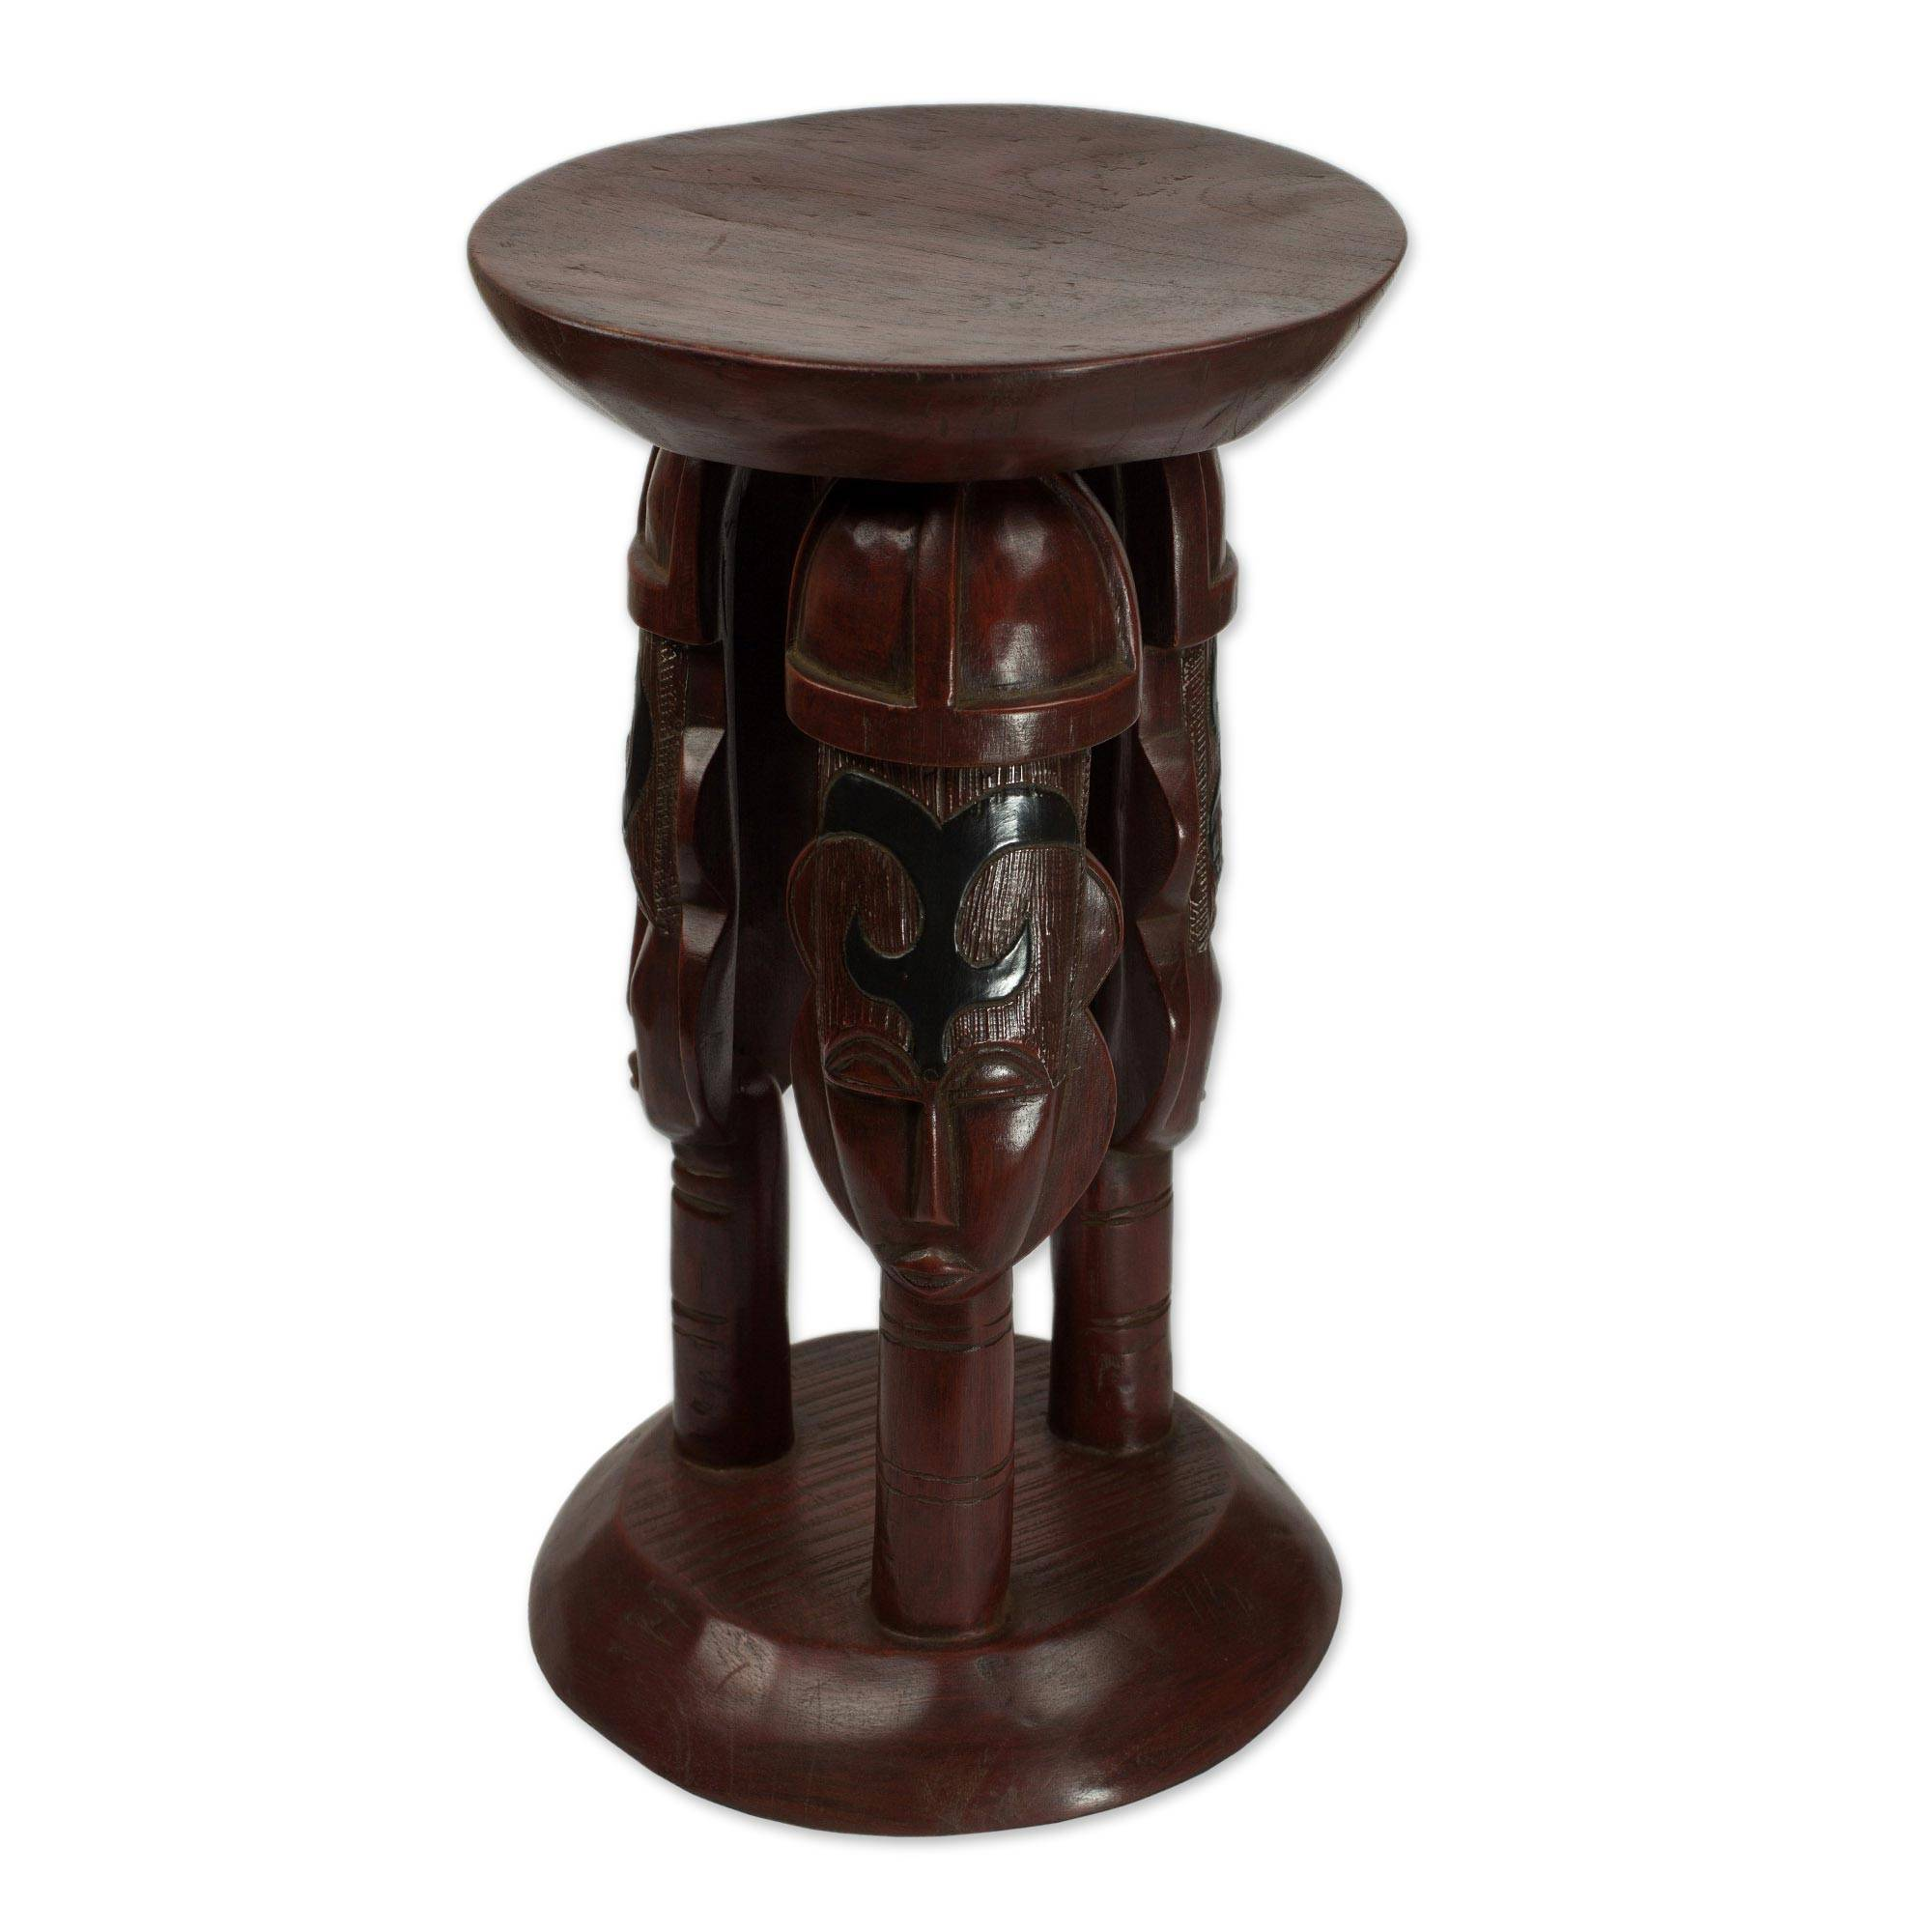 Cedar Wood Round Brown Stool with Adinkra Symbols - United Family in Brown | NOVICA  sc 1 st  Novica : round wooden stool - islam-shia.org